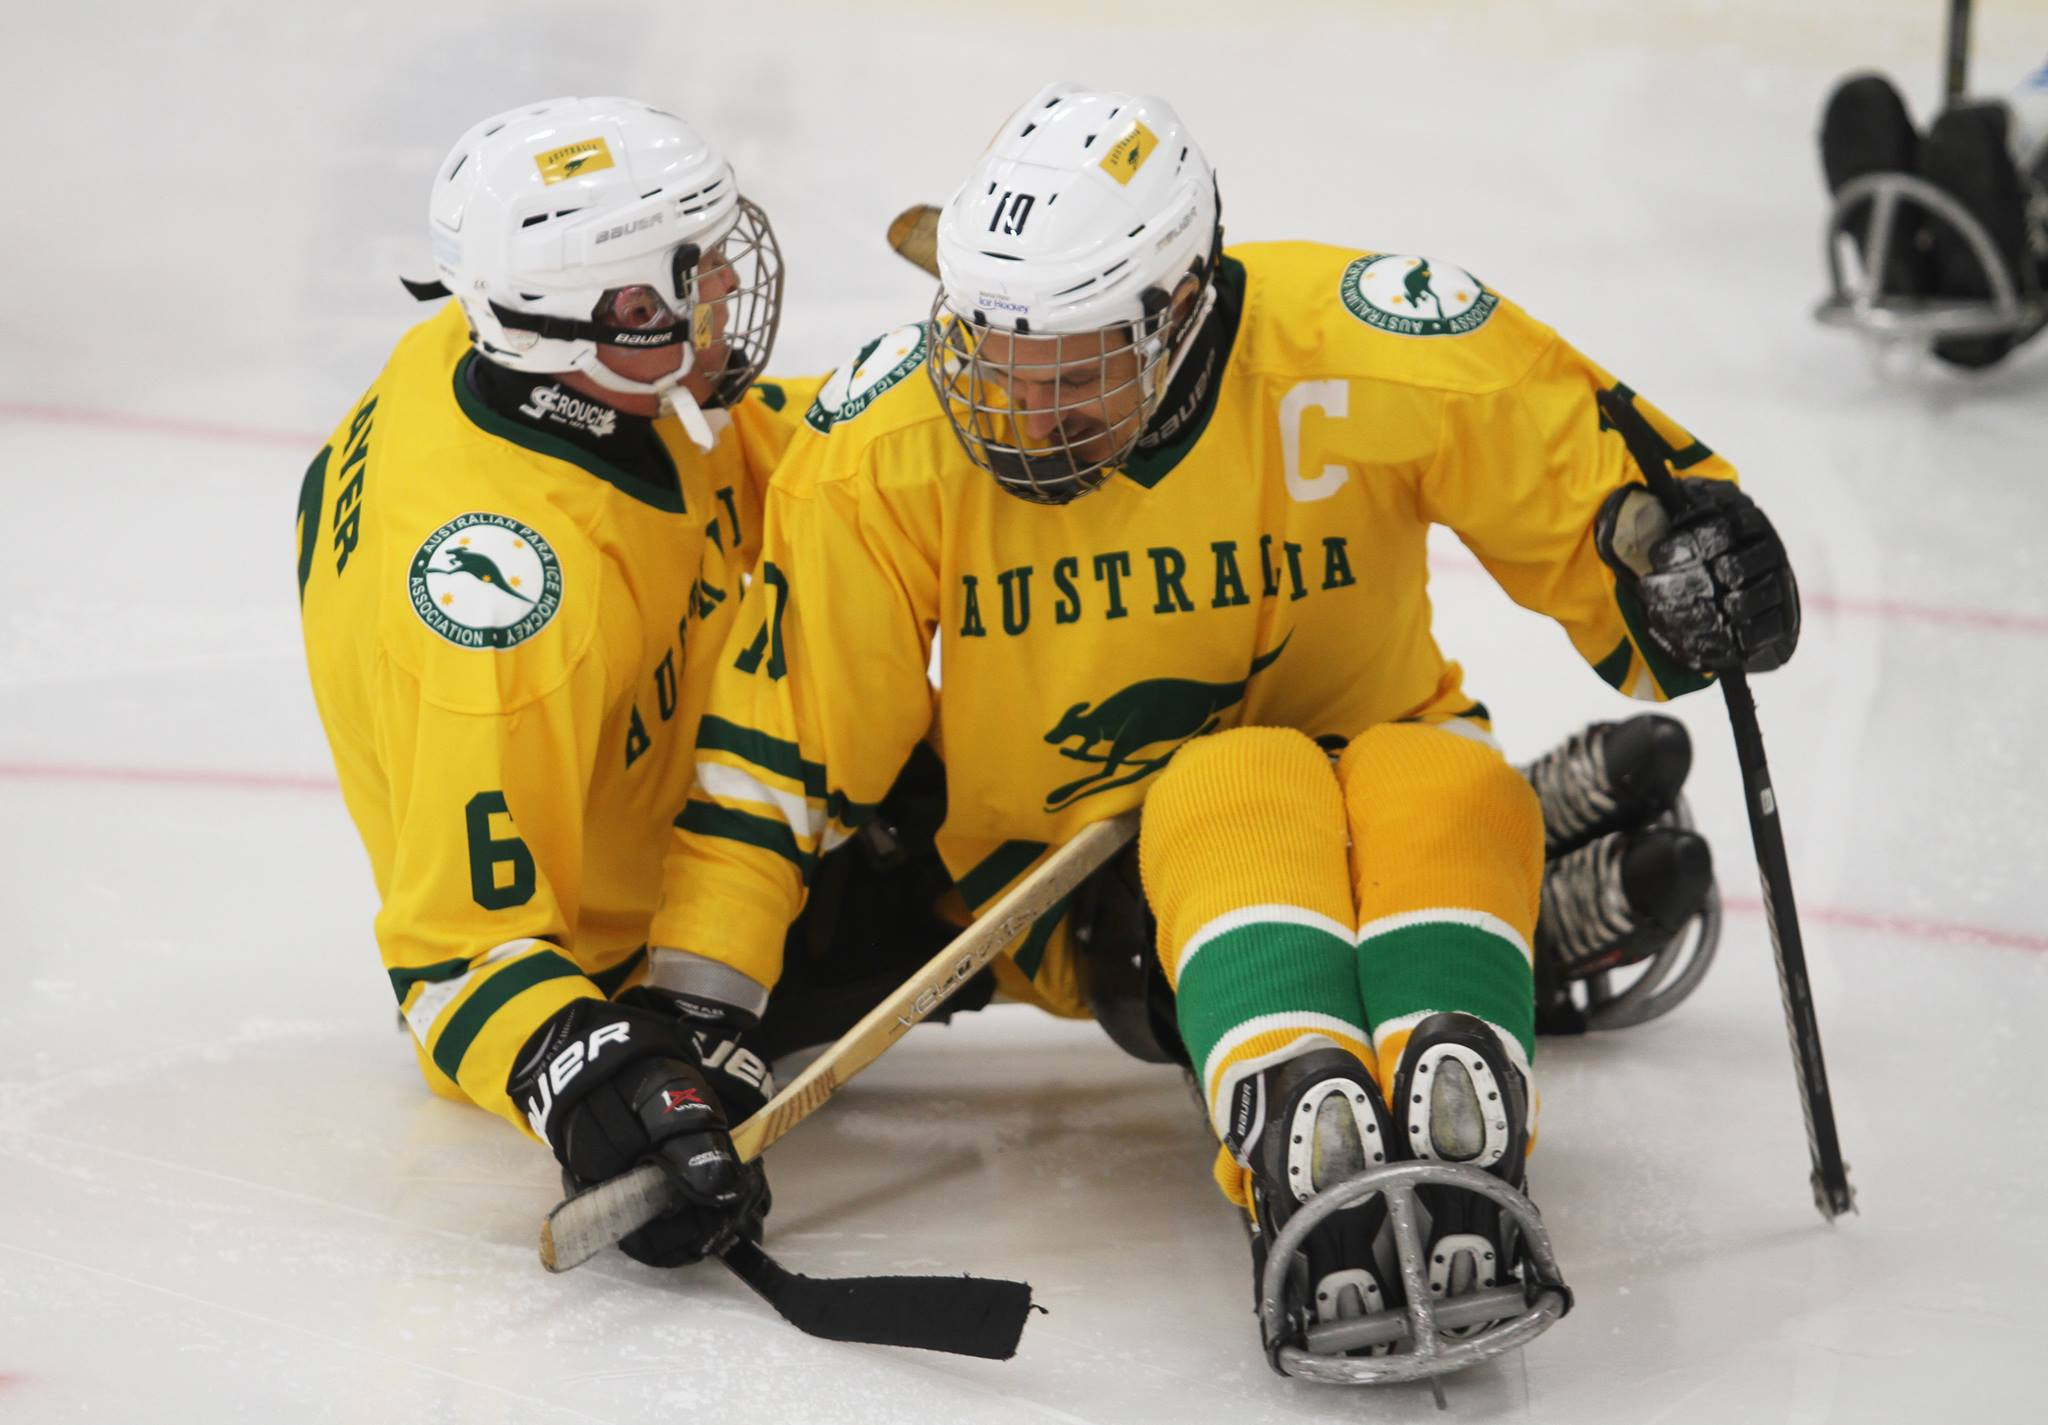 The Para-IceRoos made their international debut at the 2018 World Para-ice Hockey Championships C-Pool in Finland and won a bronze medal - now they want to qualify for Beijing 2022 ©APIHA